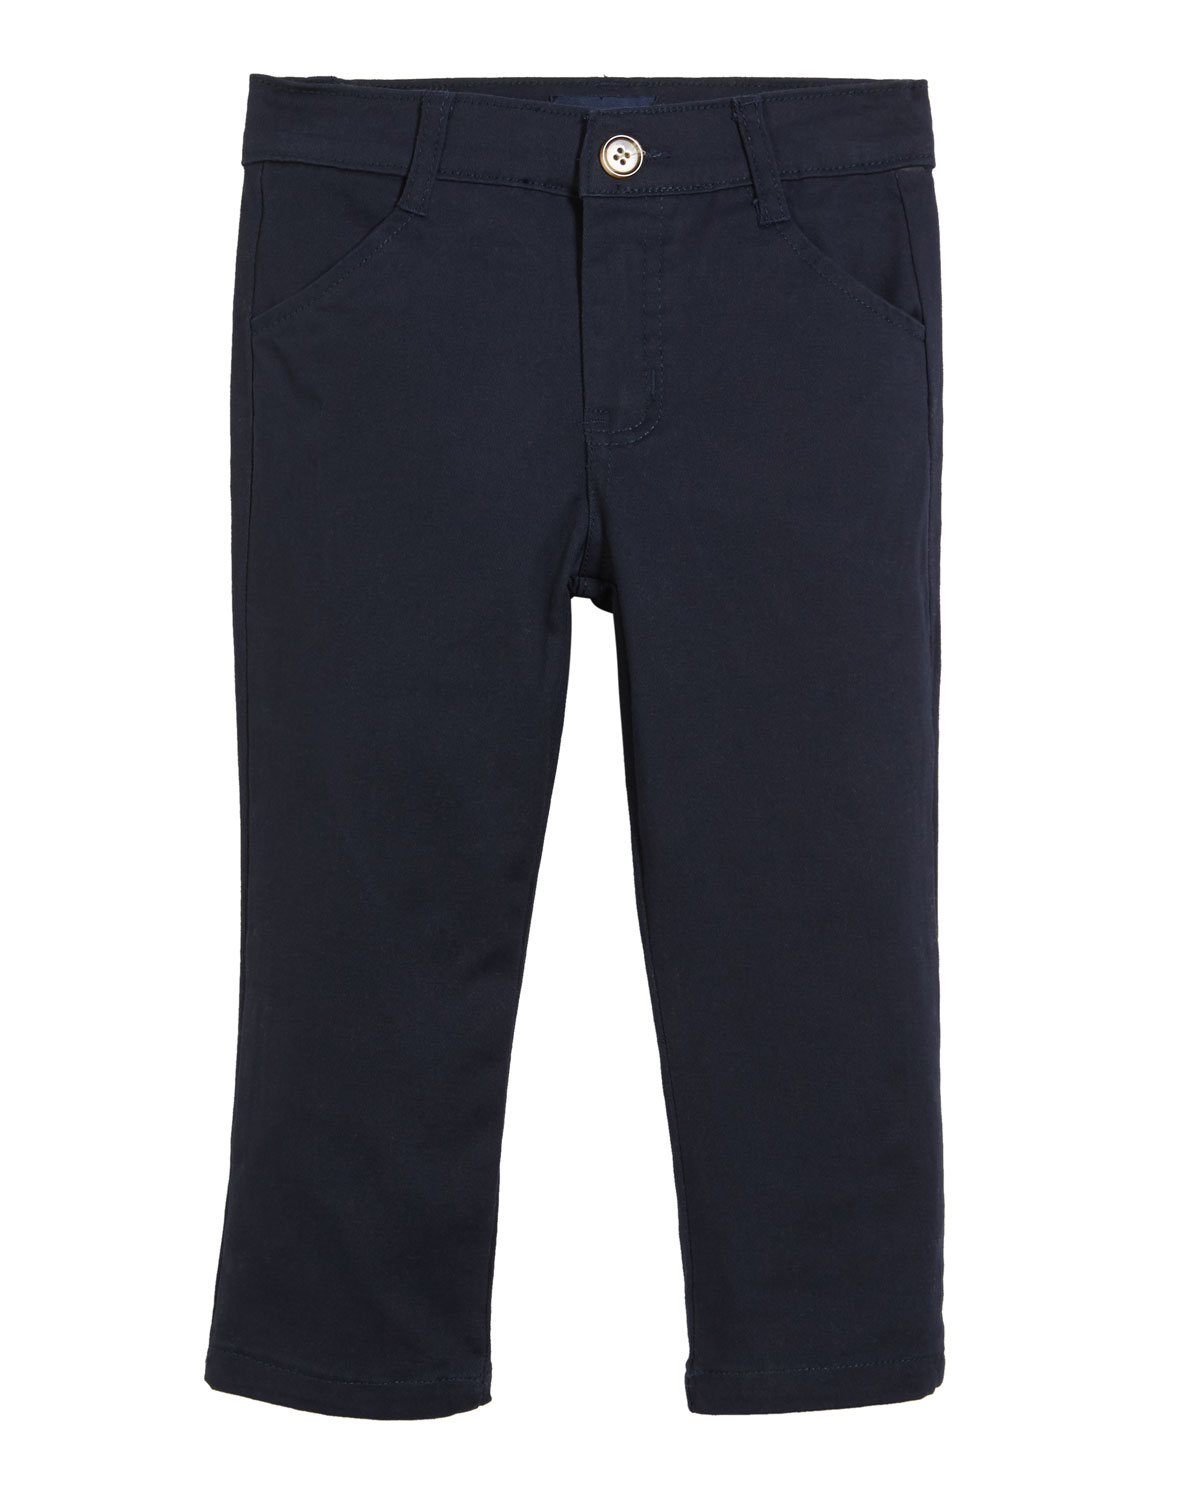 ANDY & EVAN Classic Twill Straight-Leg Pants, Size 2-7 in Blue